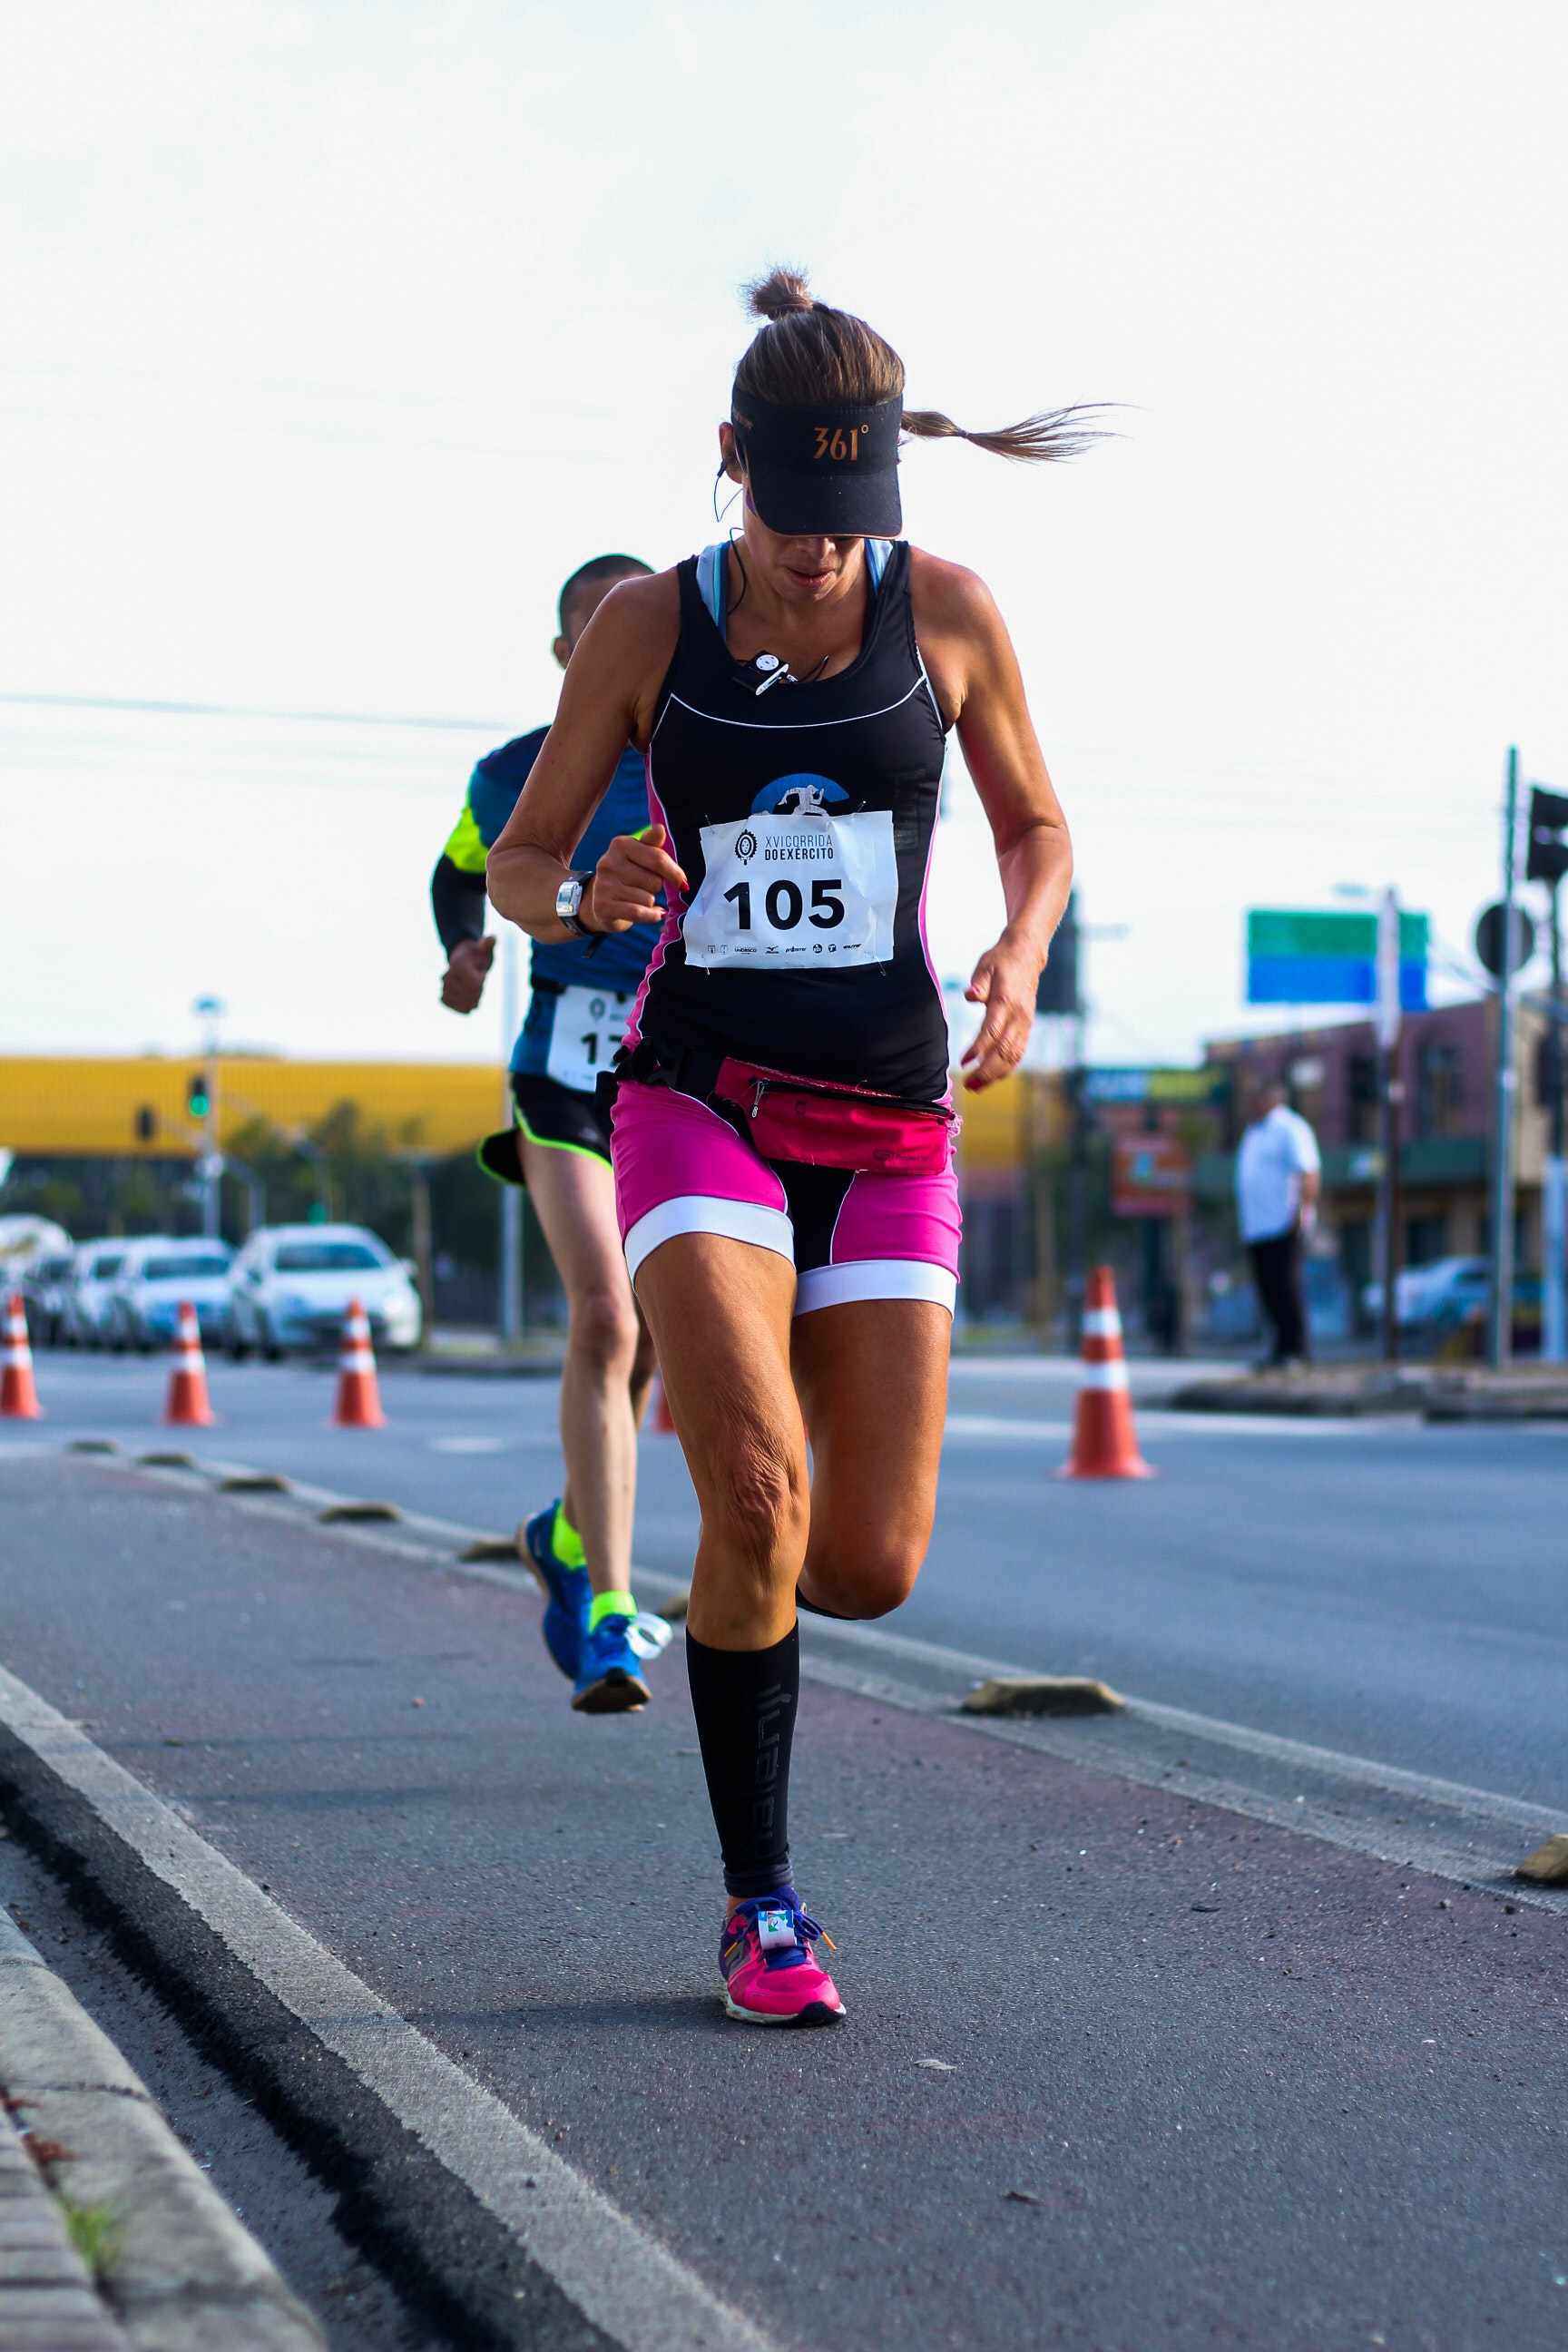 action-energy-athlete-competition-2479179.jpg